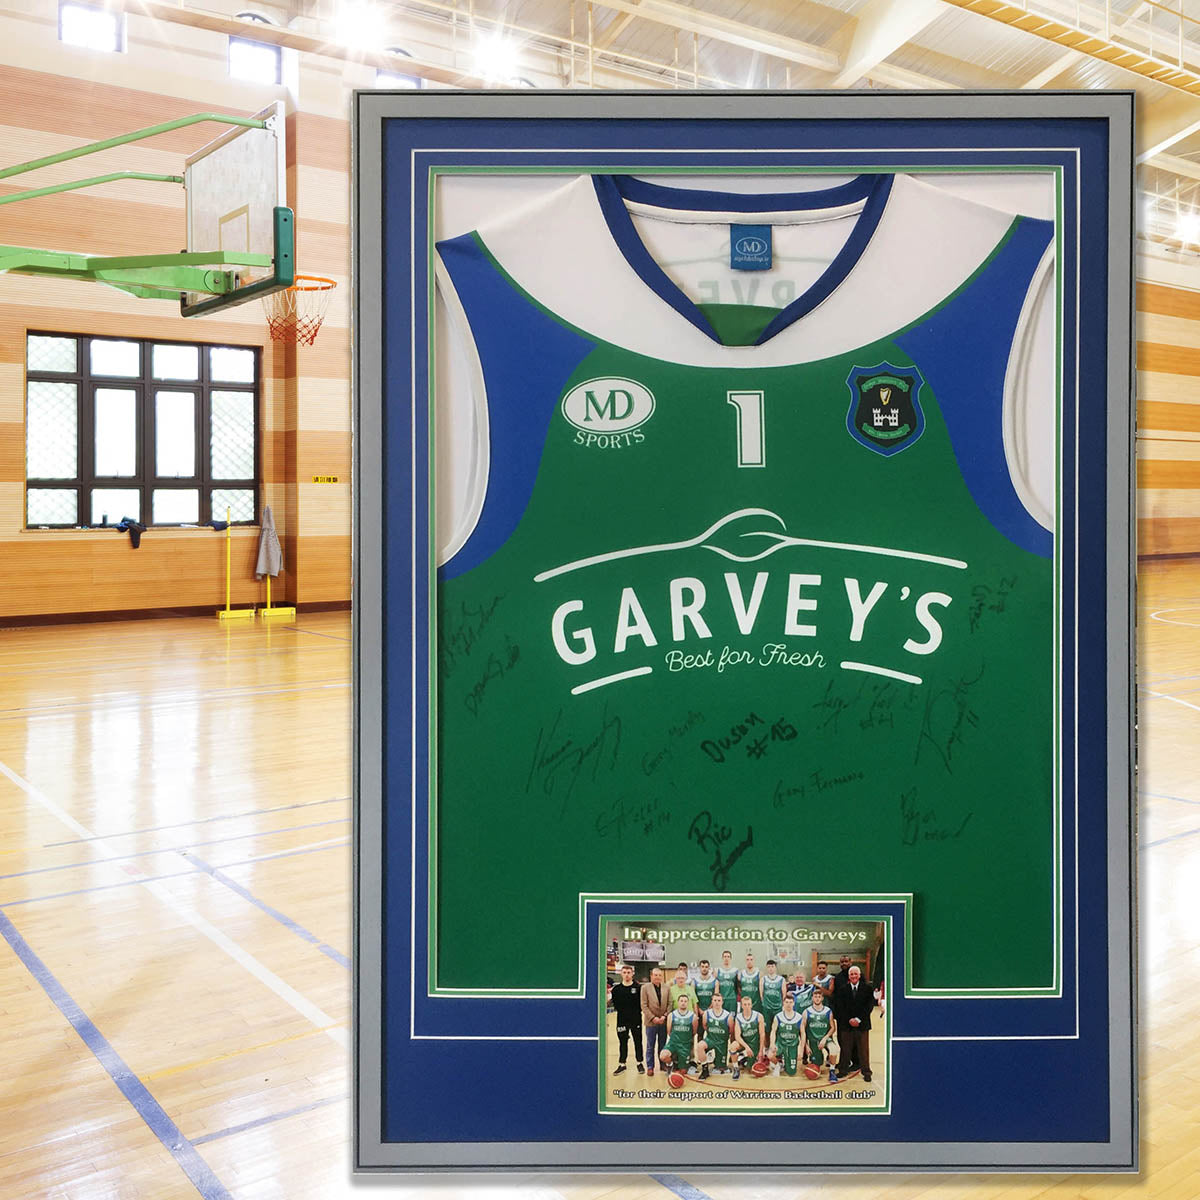 Basketball jersey frame - with photo plus captioning